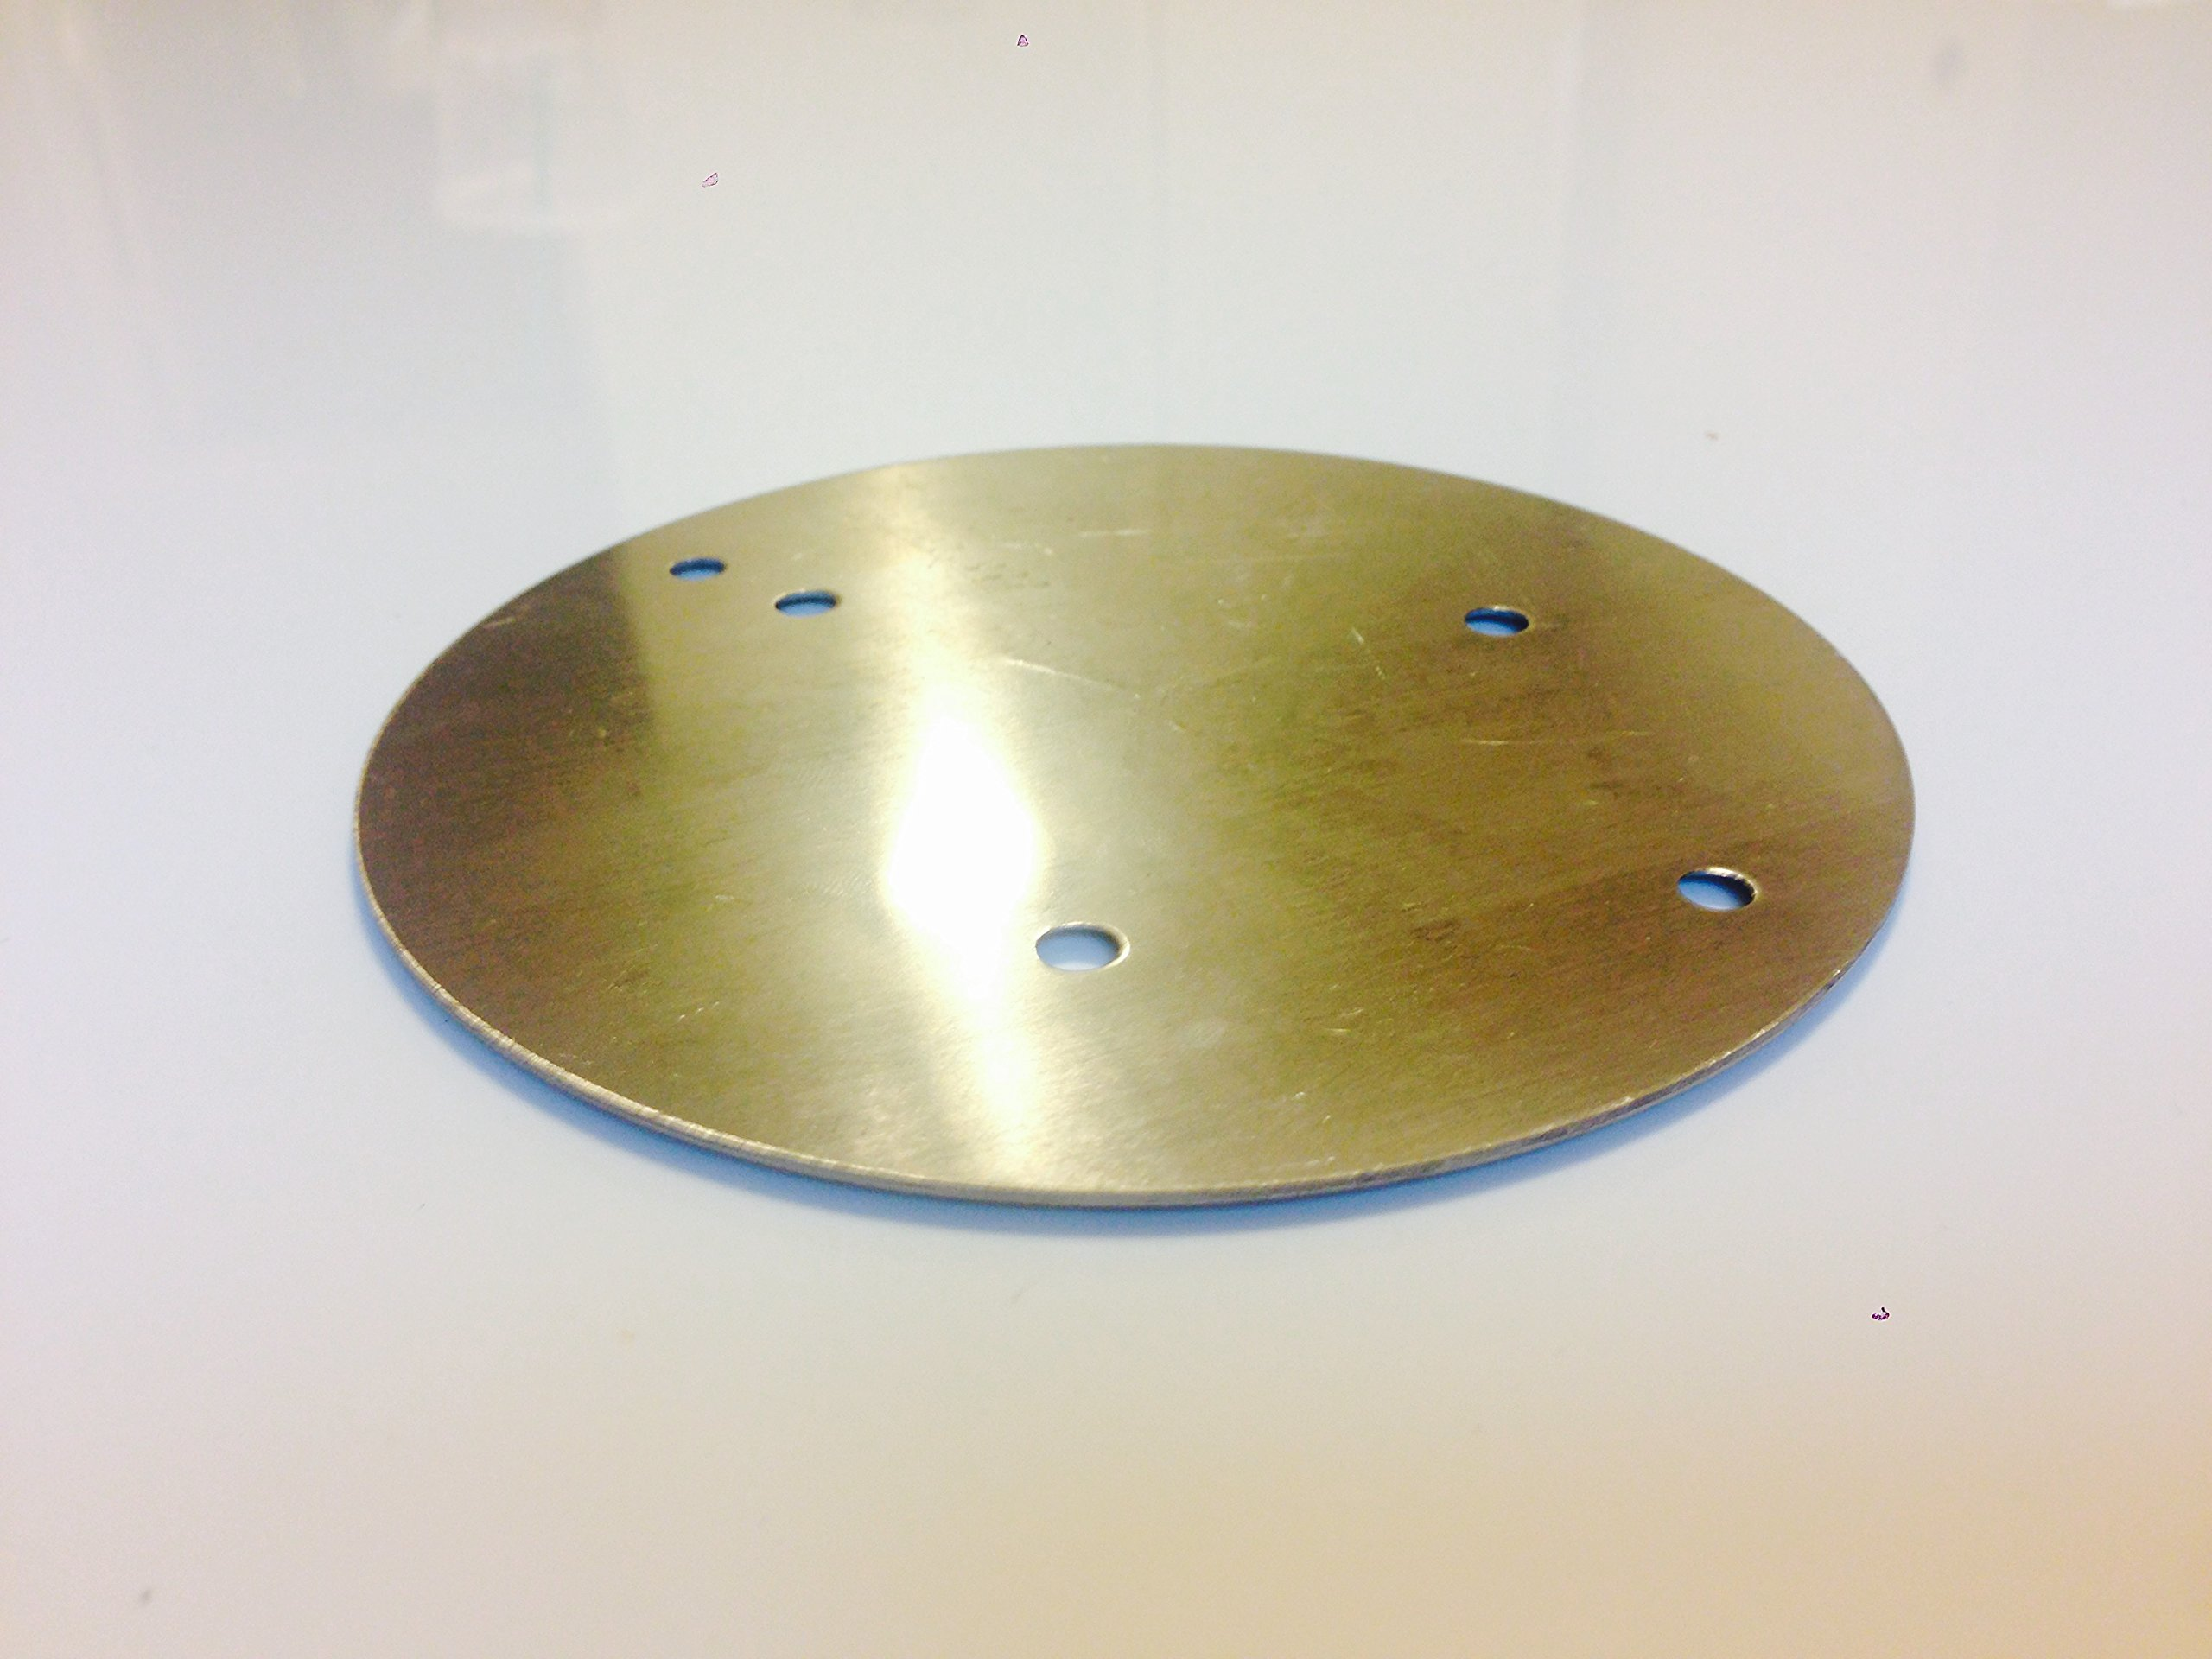 Replacement Stainless Steel Blade for Jack Lalanne Power Juicer by Berucci (Image #3)